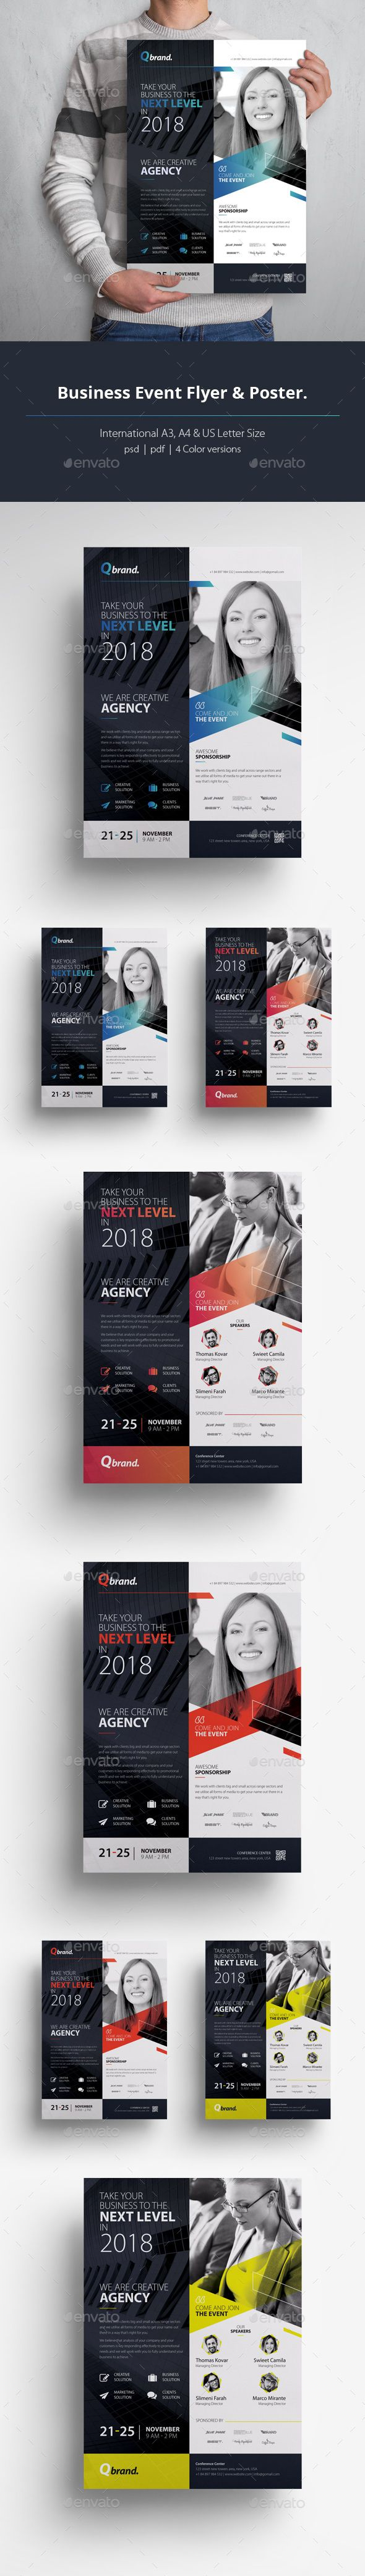 business event flyer poster template photoshop psd marketing